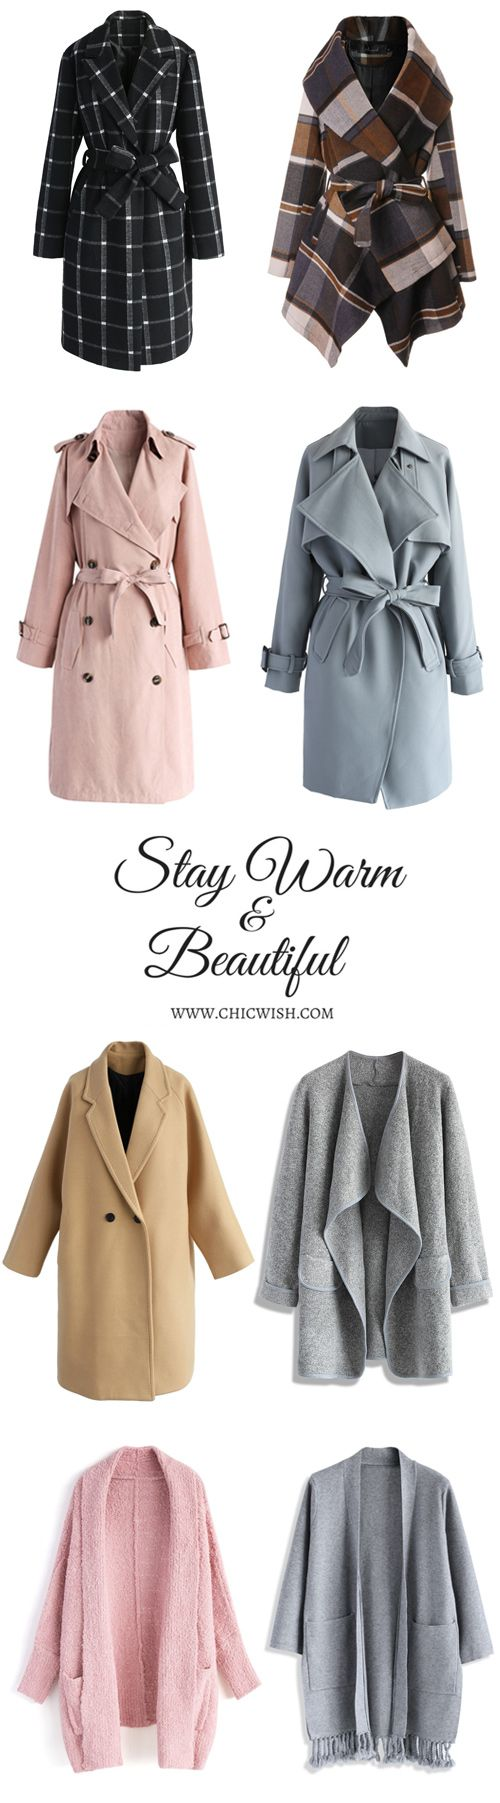 Discover more winter coats at Chicwish.com